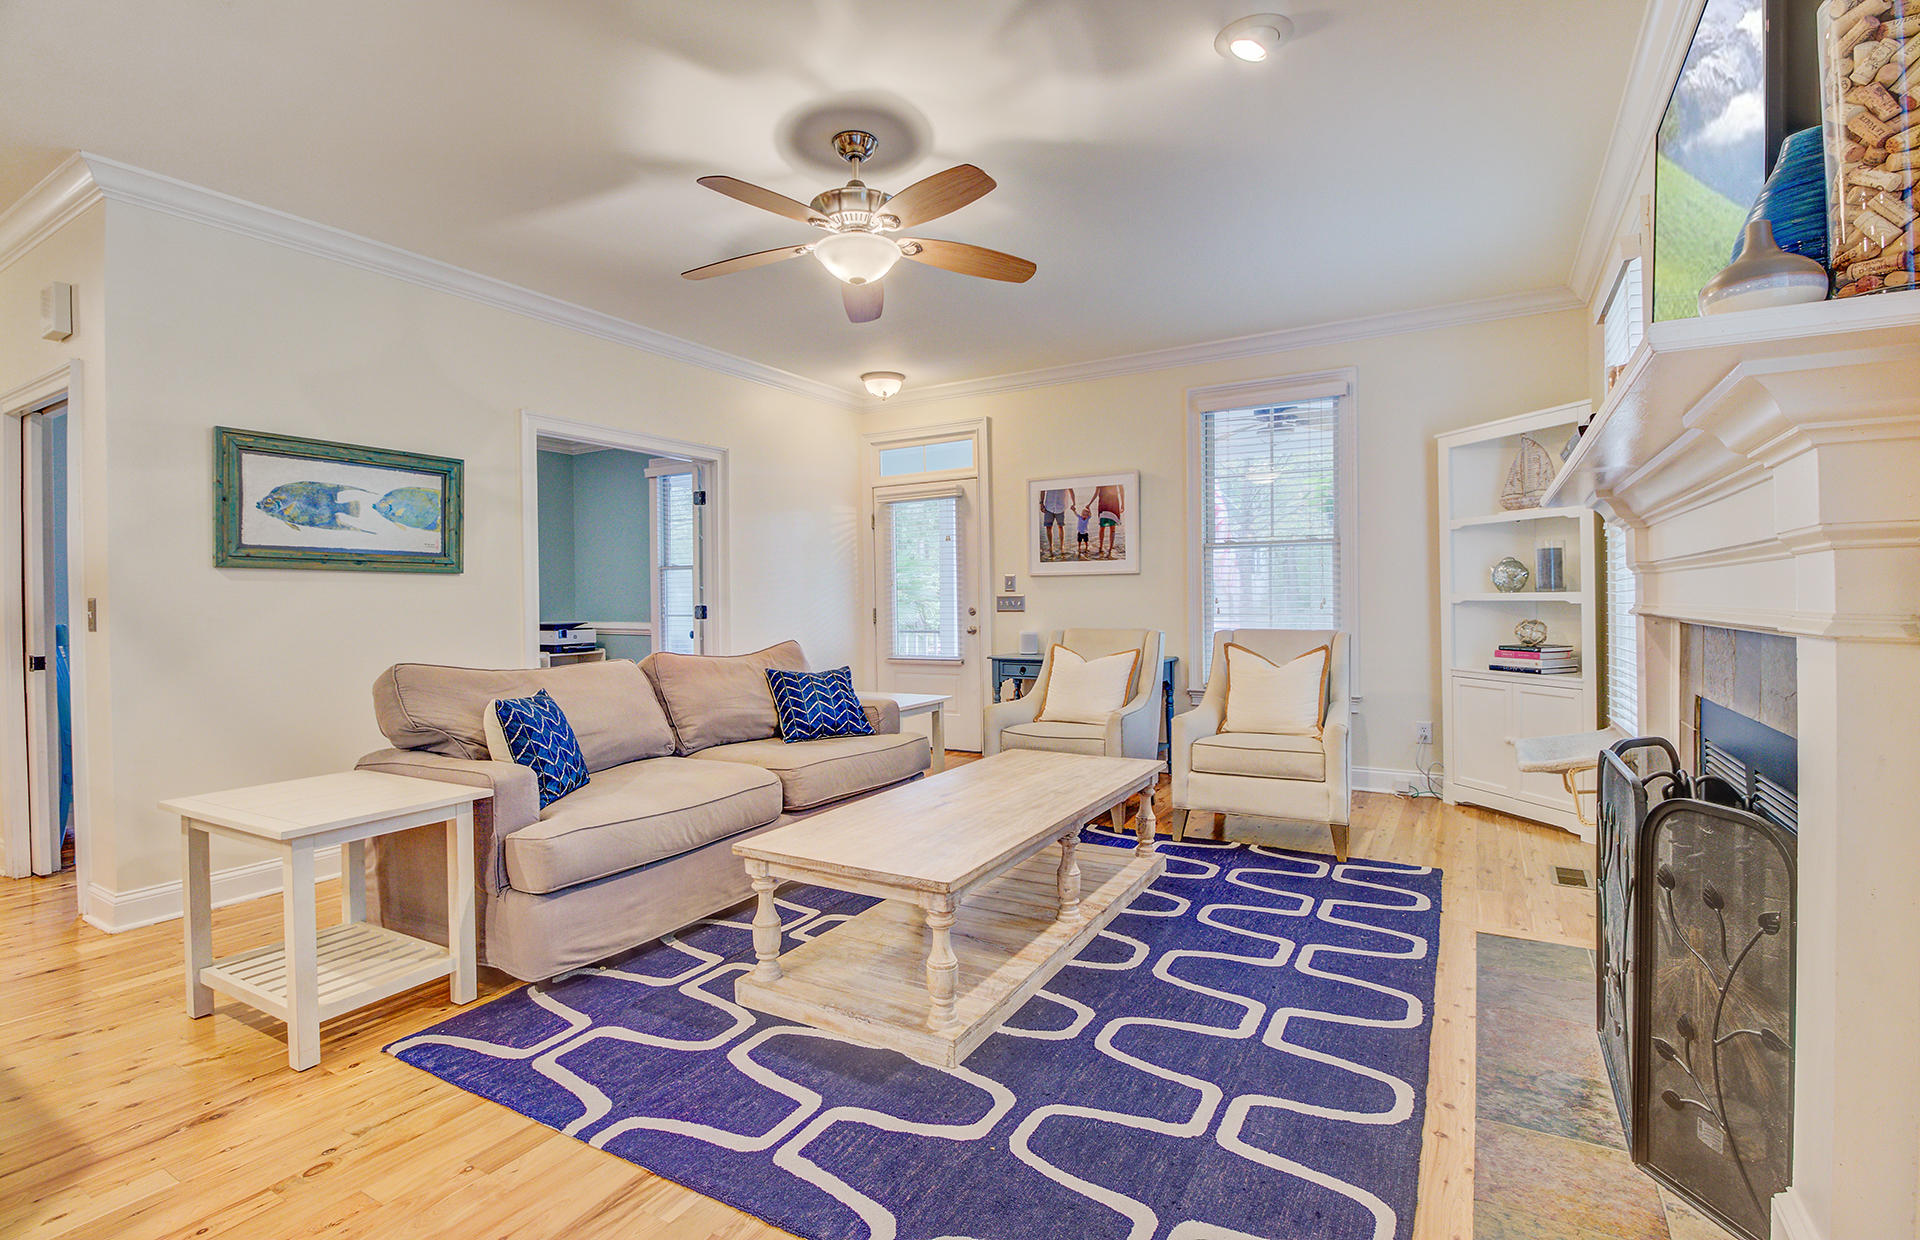 The Villages In St Johns Woods Homes For Sale - 5032 Coral Reef, Johns Island, SC - 33